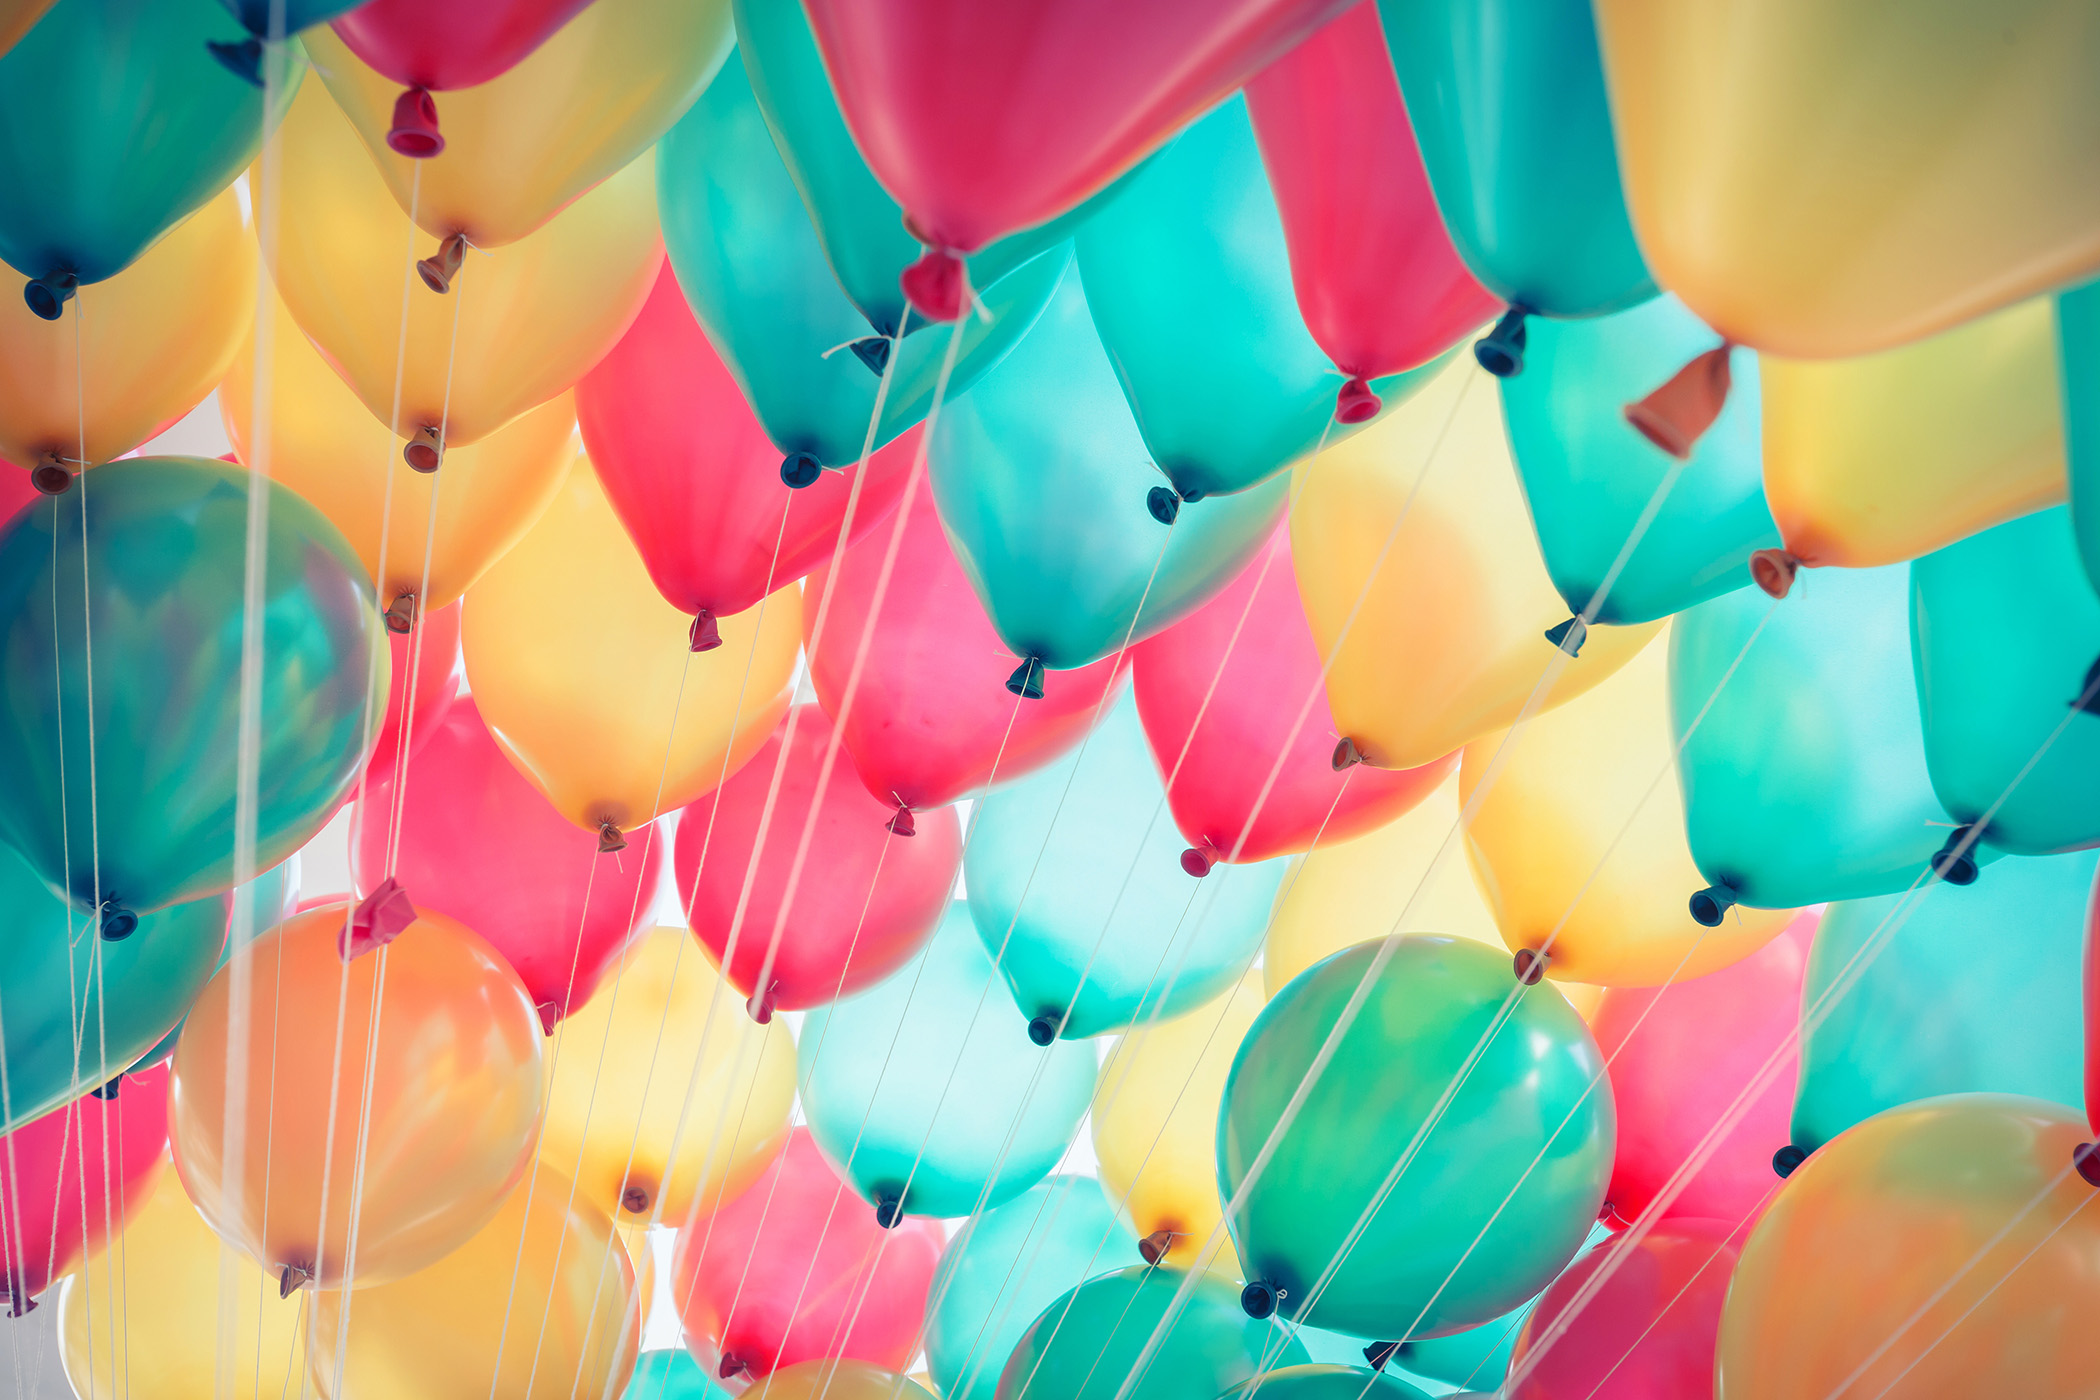 This is a photo of balloons.